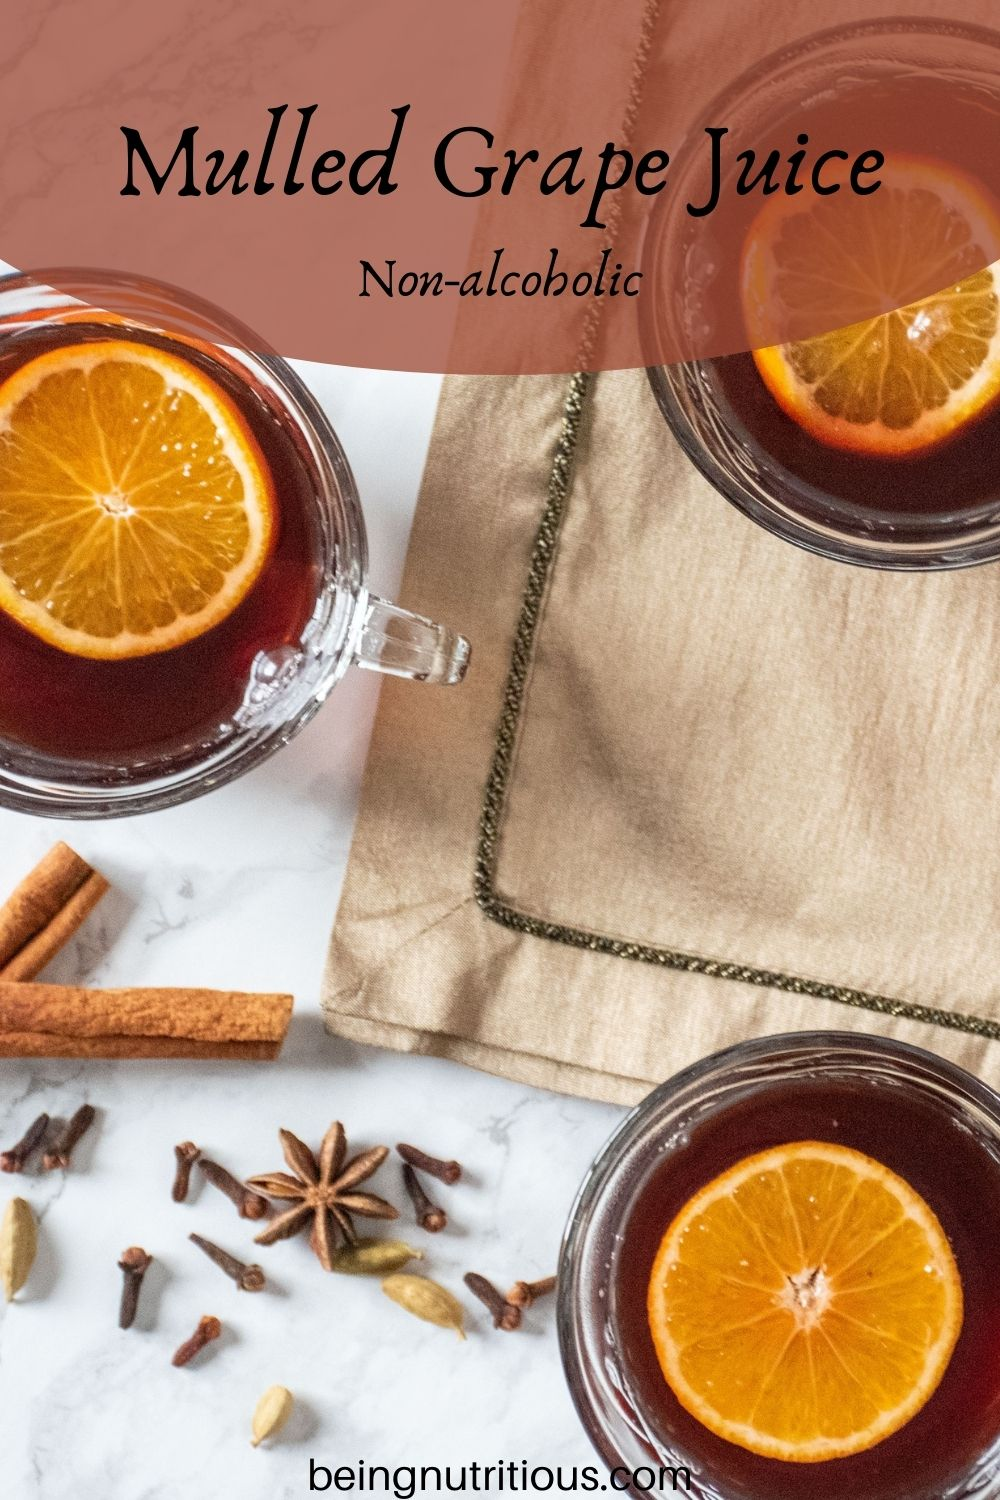 Overhead shot of 3 small glass mugs filled with mulled grape juice, each with an orange slice in them. Text overlay: Mulled Grape Juice; non-alcoholic.